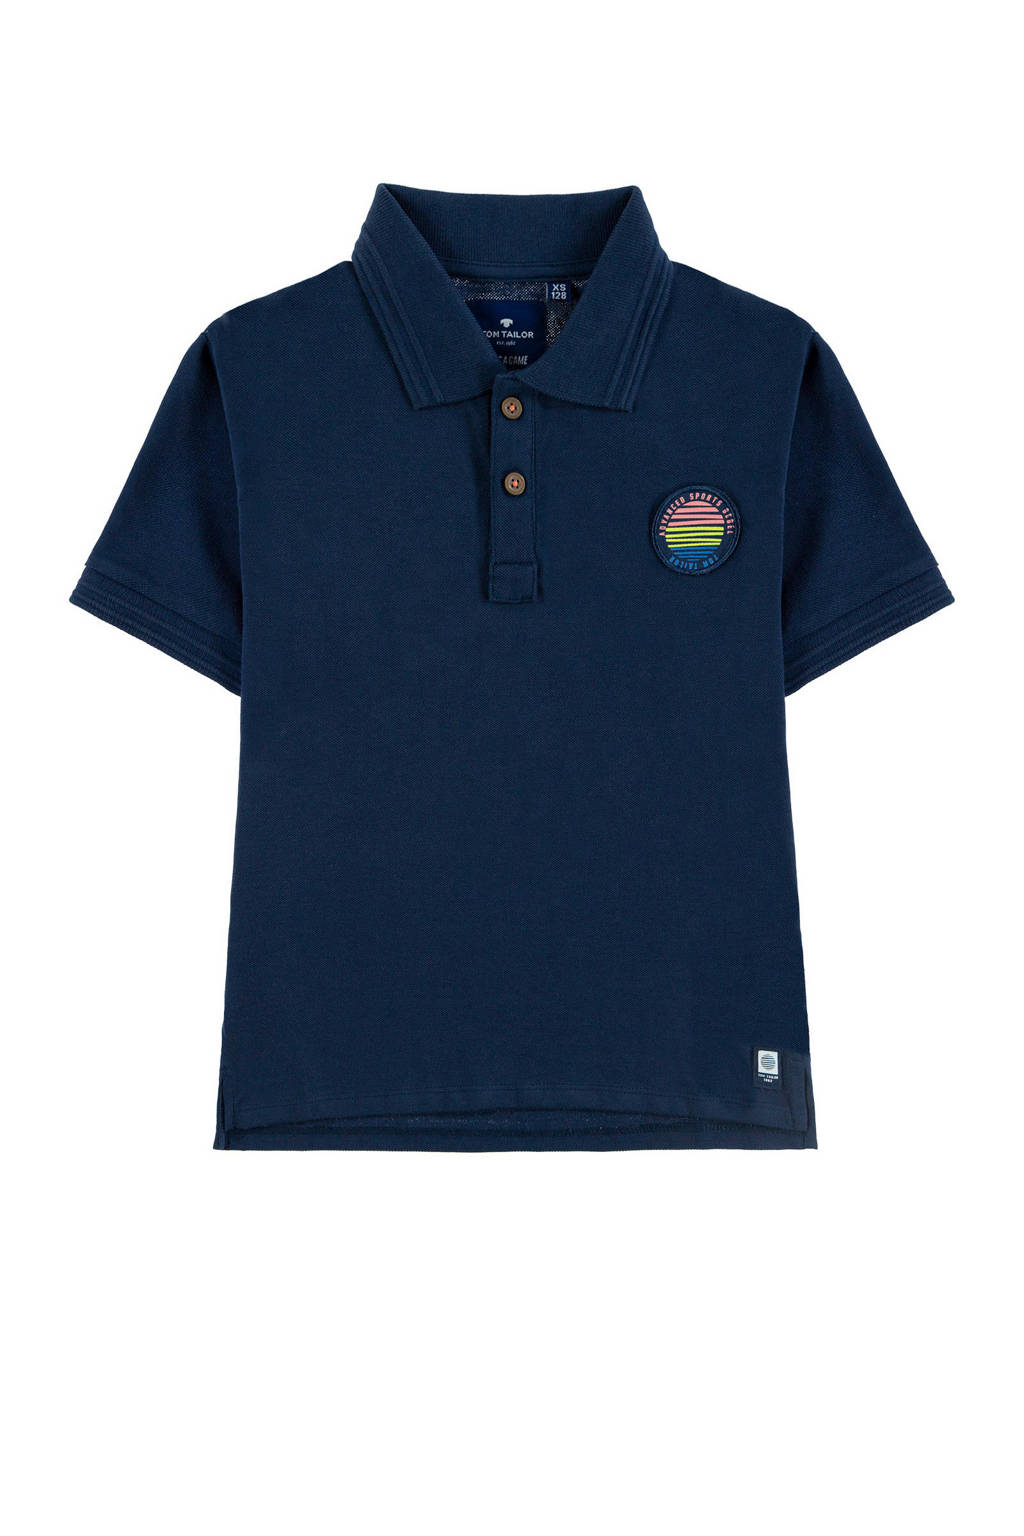 Tom Tailor polo met patch donkerblauw, Donkerblauw